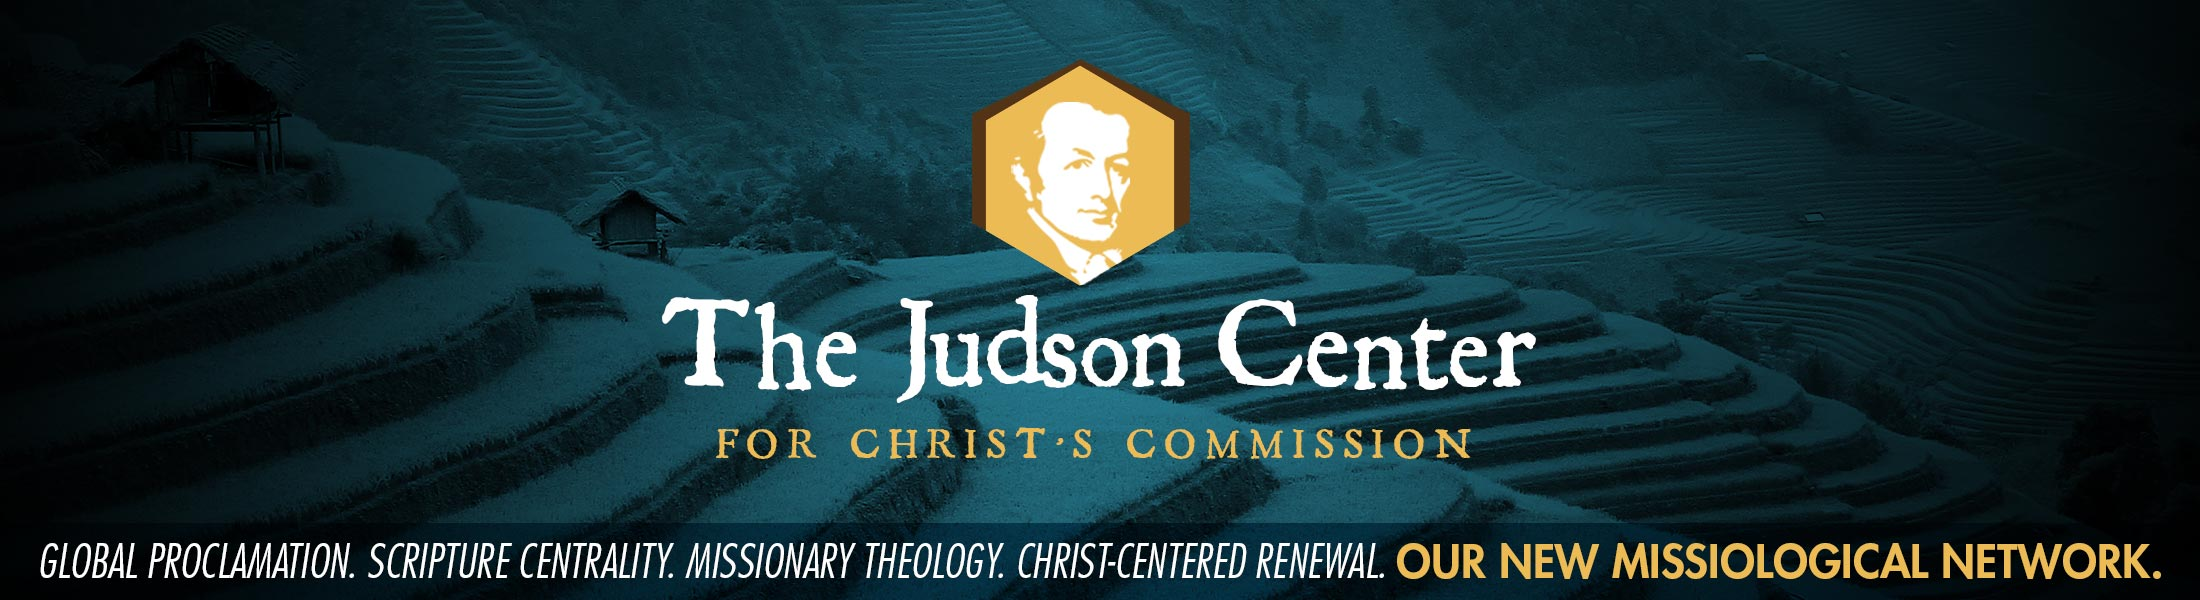 global proclamation. scripture centrality. missionary theology. Christ-centered renewal. The Judson Center is Western Seminary's New Missiological network.